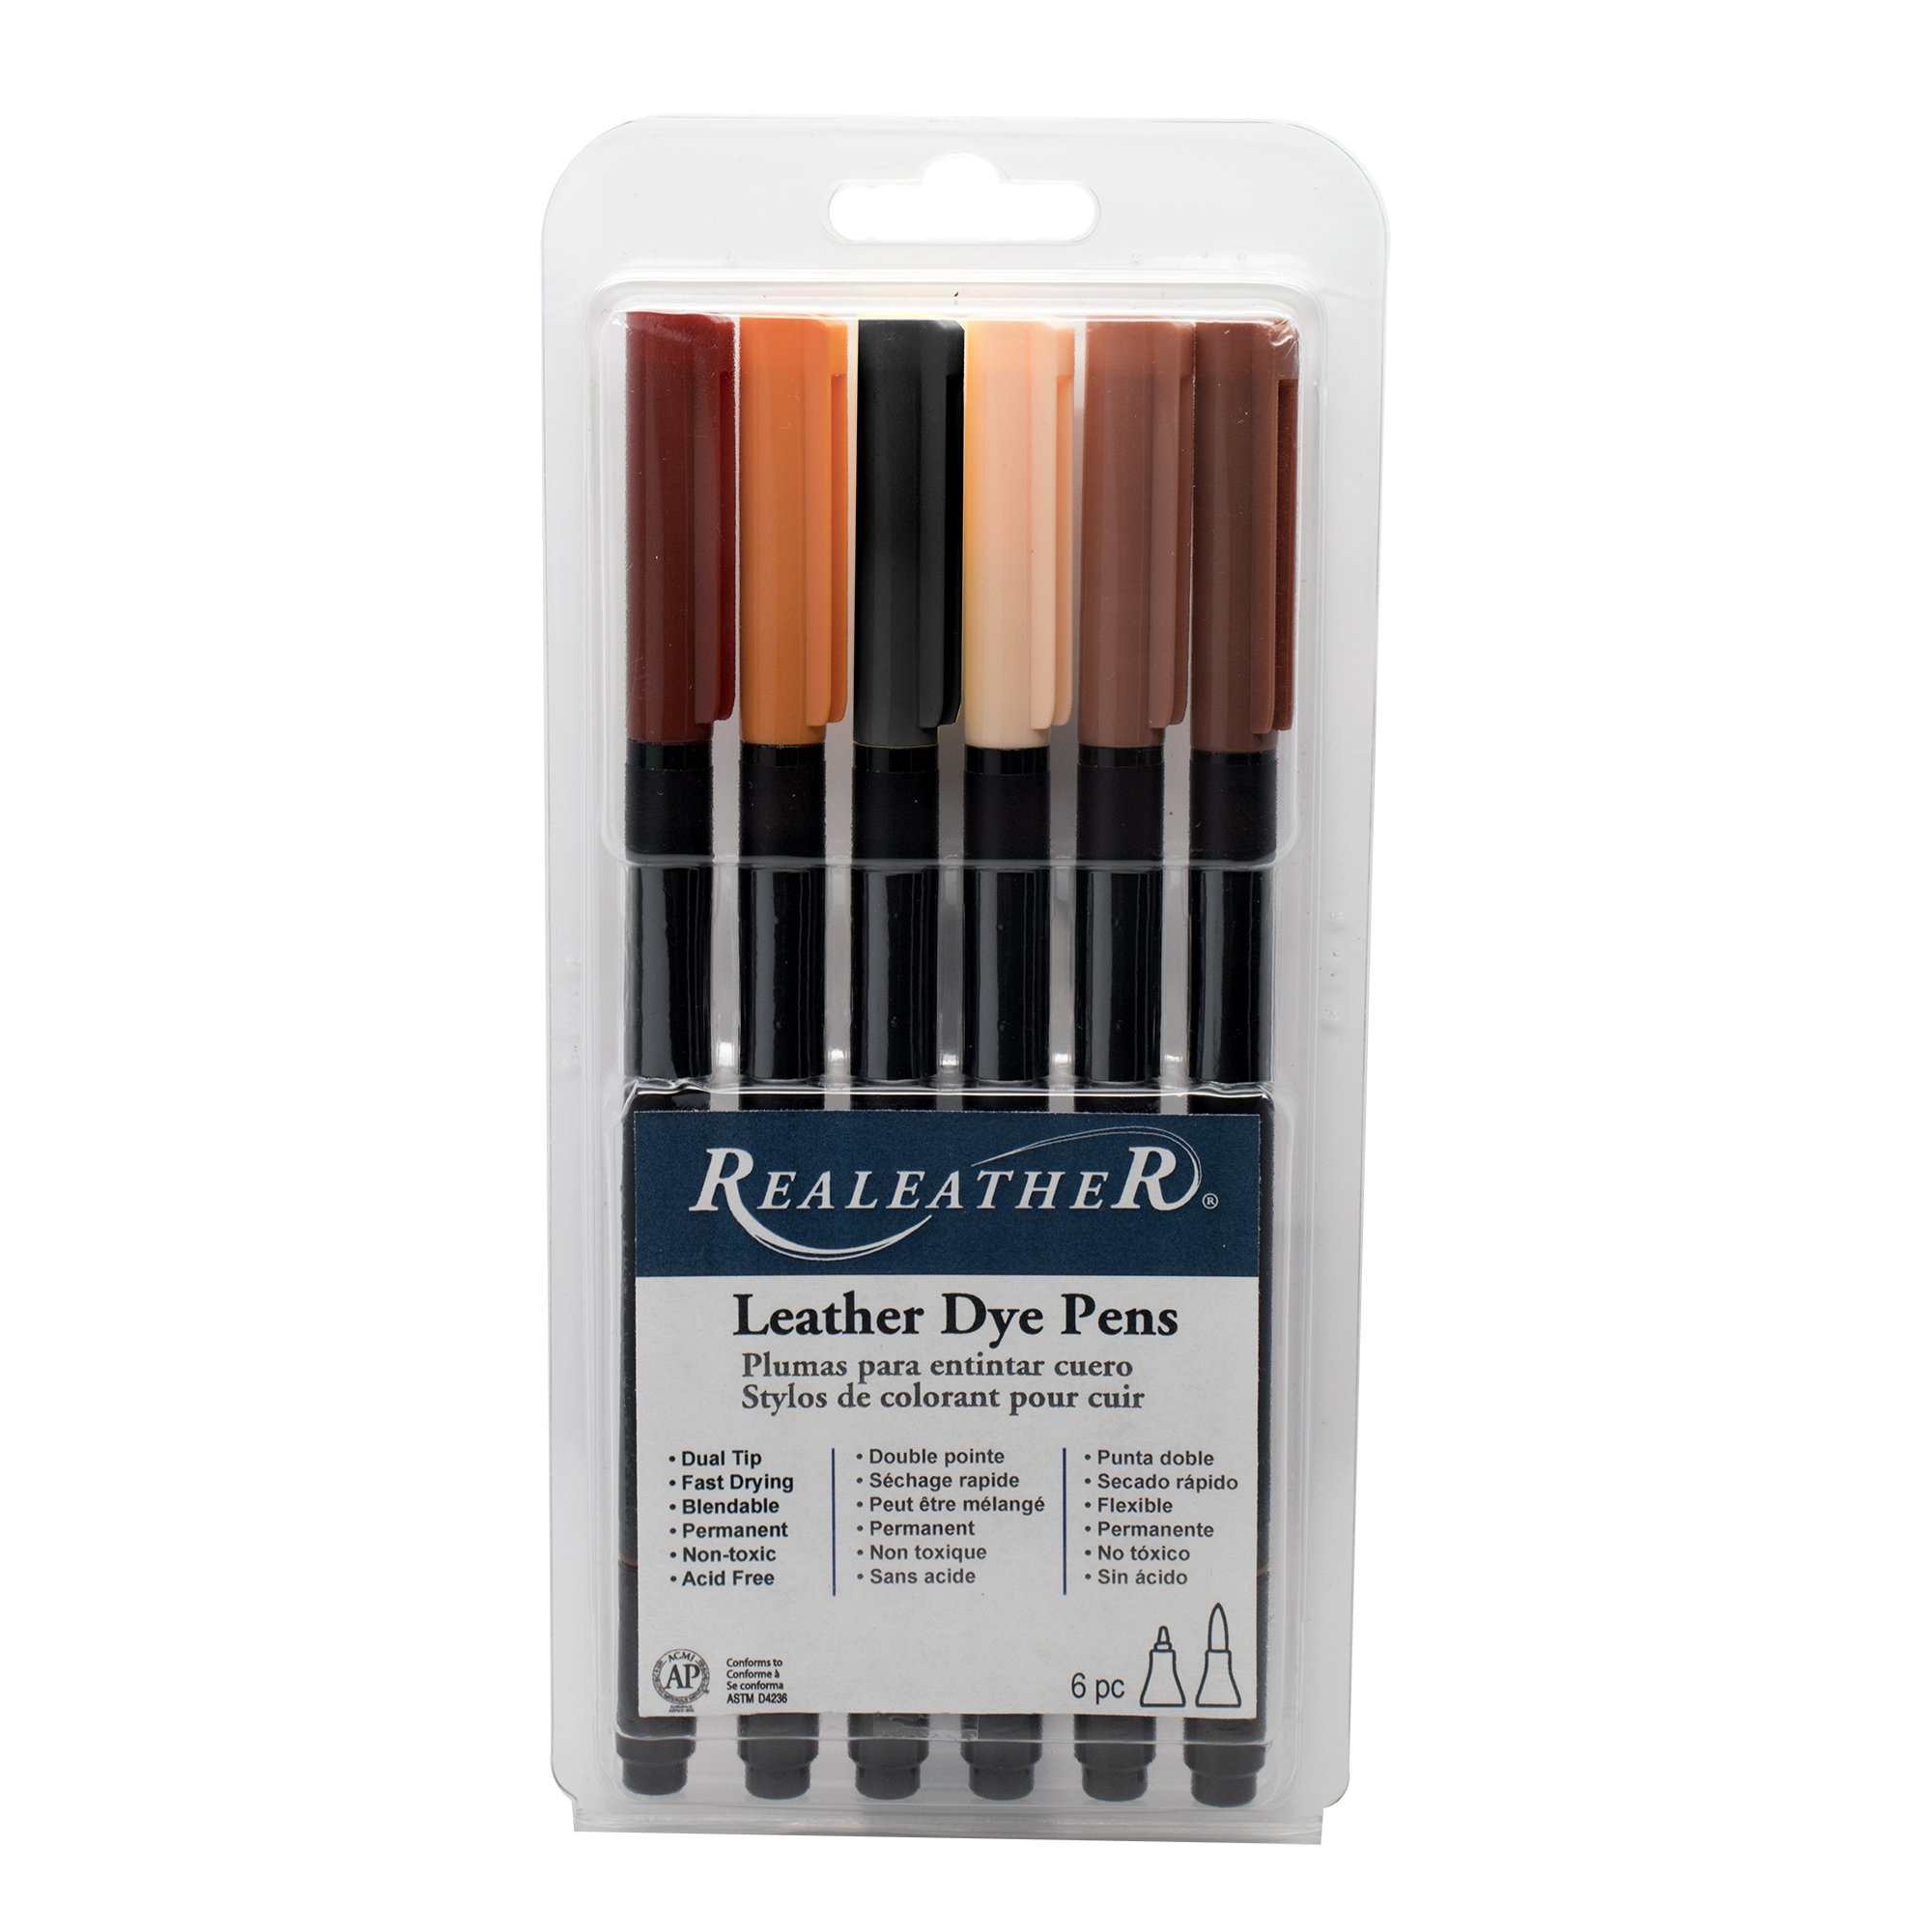 Realeather F2400-01 Dual Tip Leather Dye Marker Pens (6 Pack), Earth Tones by Realeather